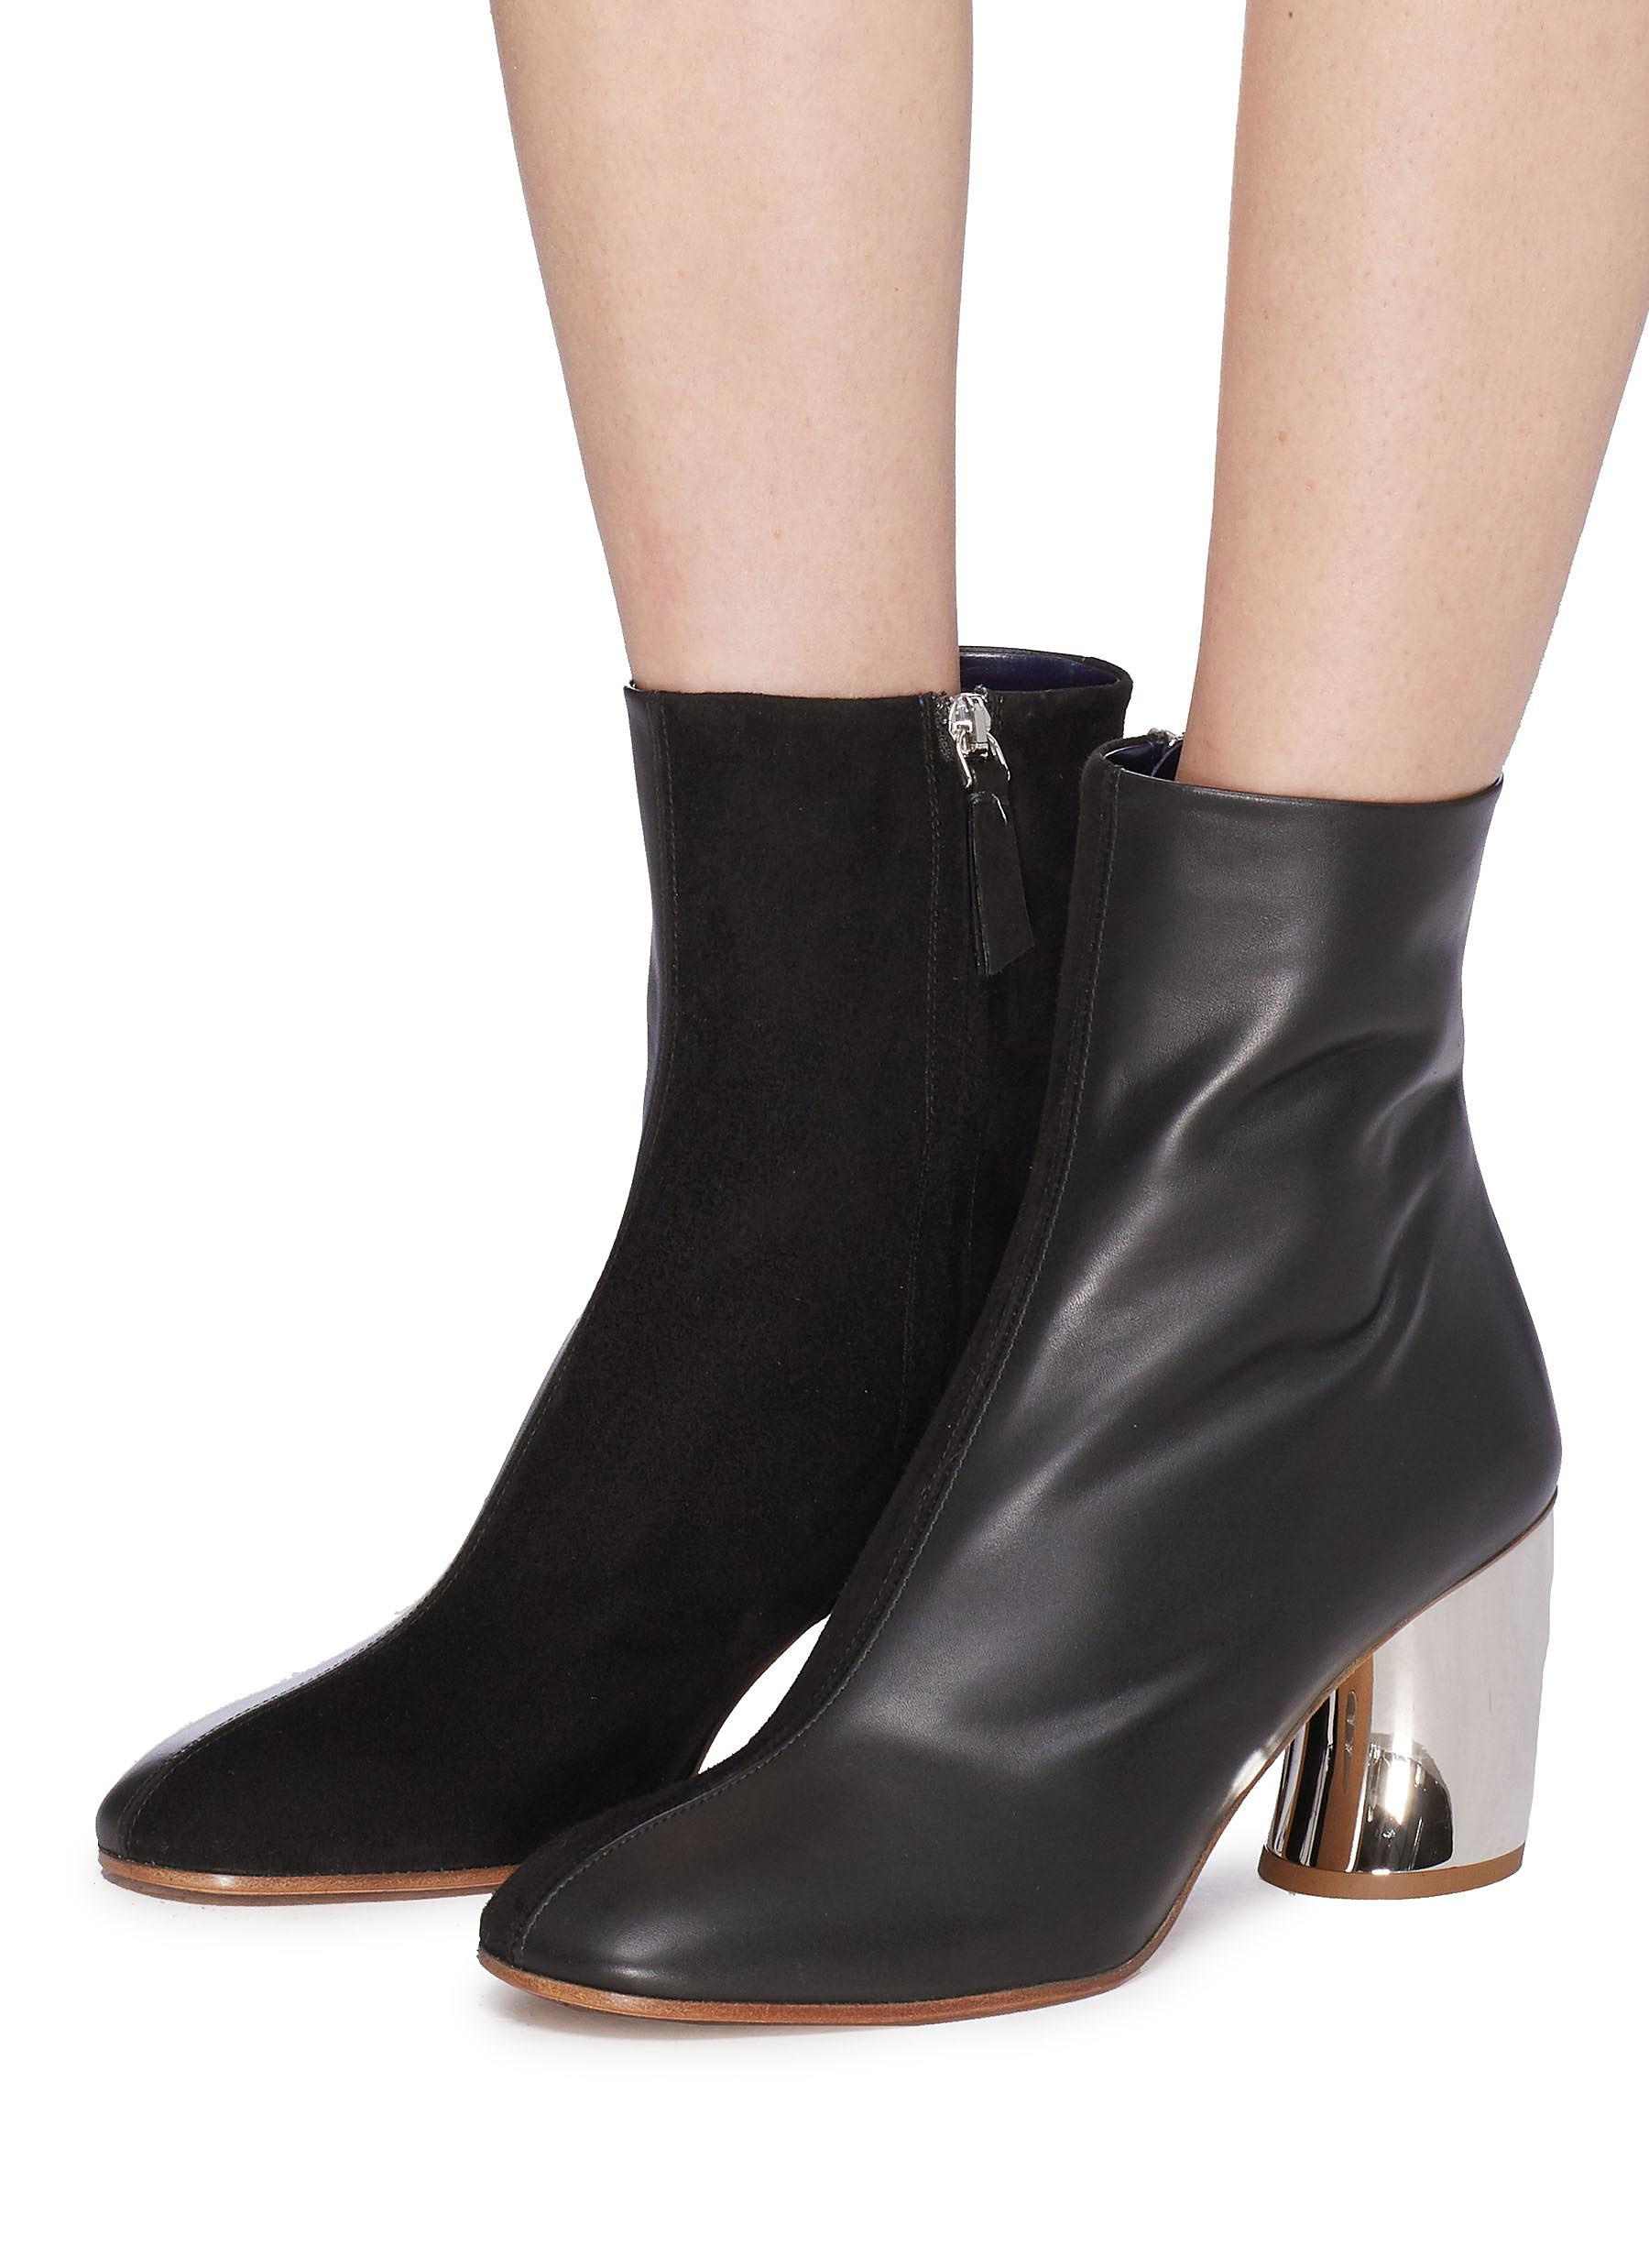 Proenza Schouler Curved Mirror Heel Leather And Suede Ankle Boots in Black